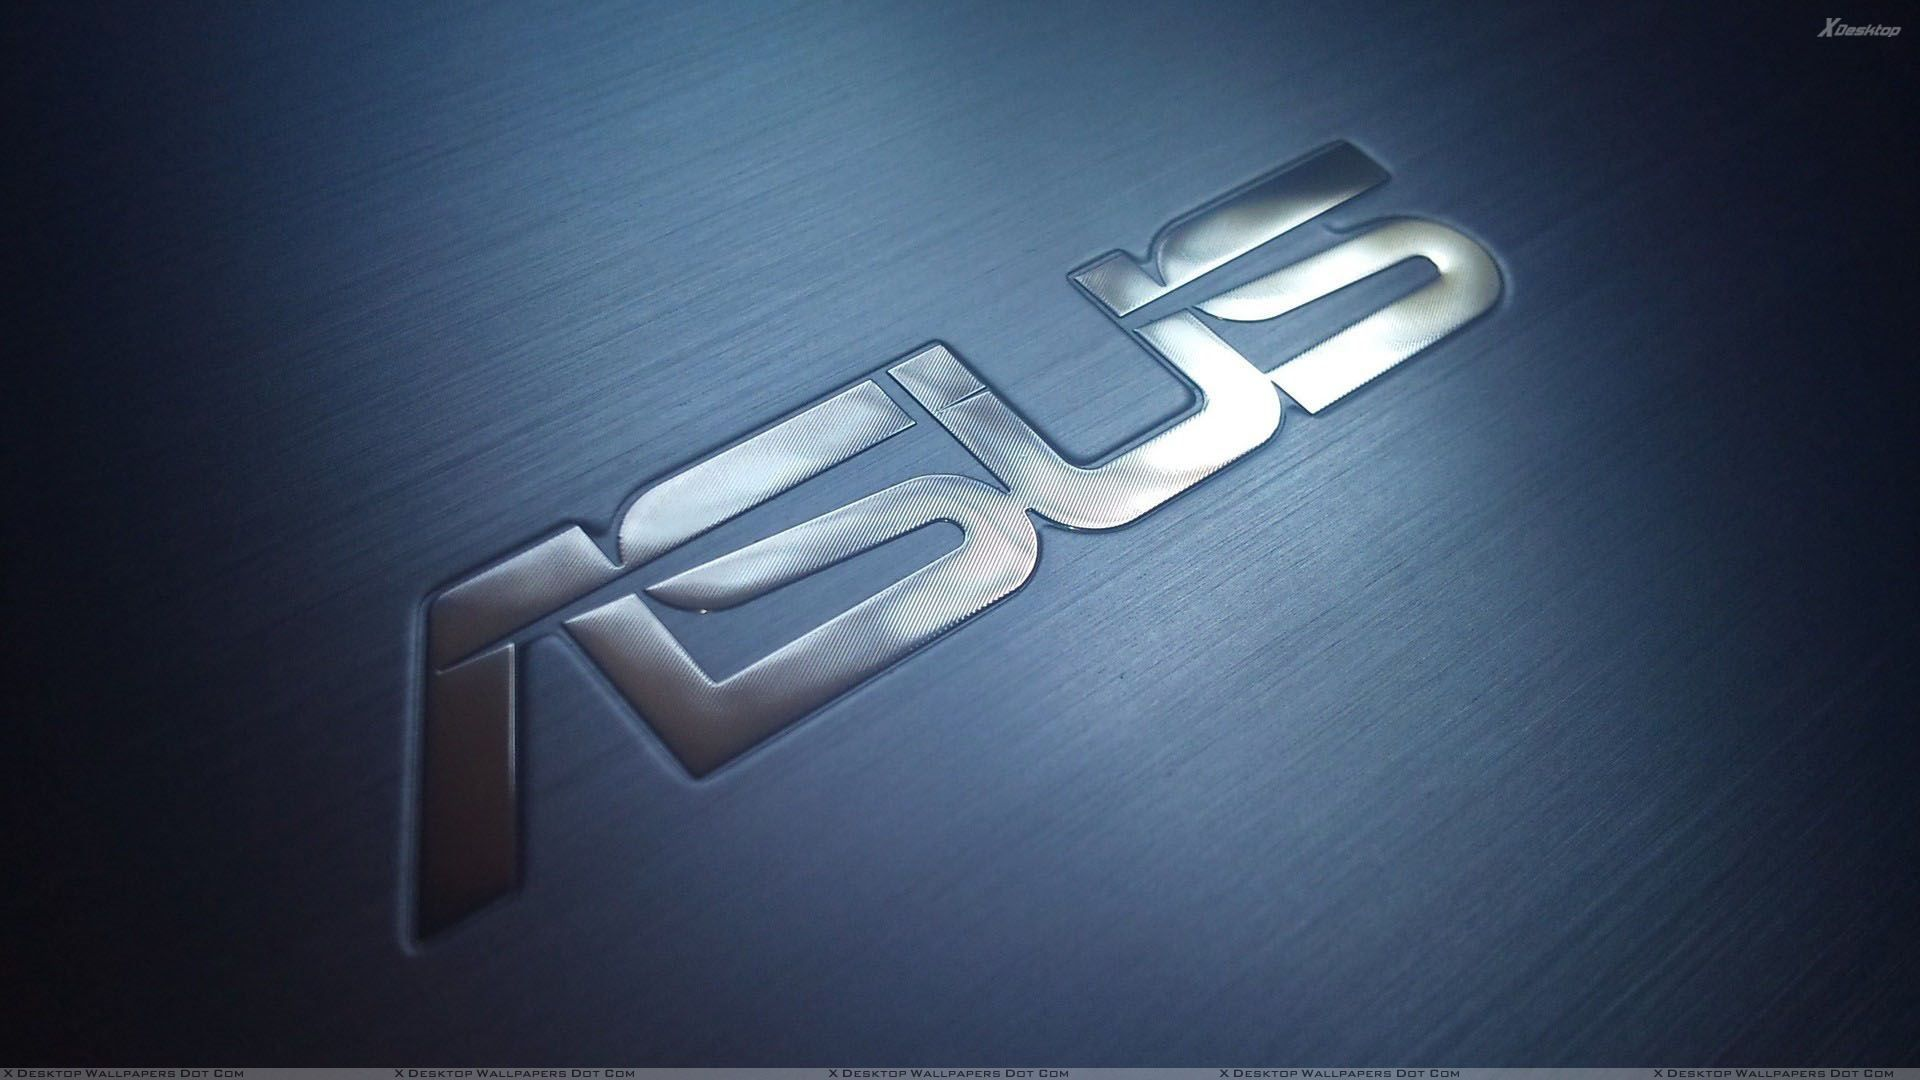 Asus Rog Hd Desktop Wallpaper Widescreen High Definition 1024